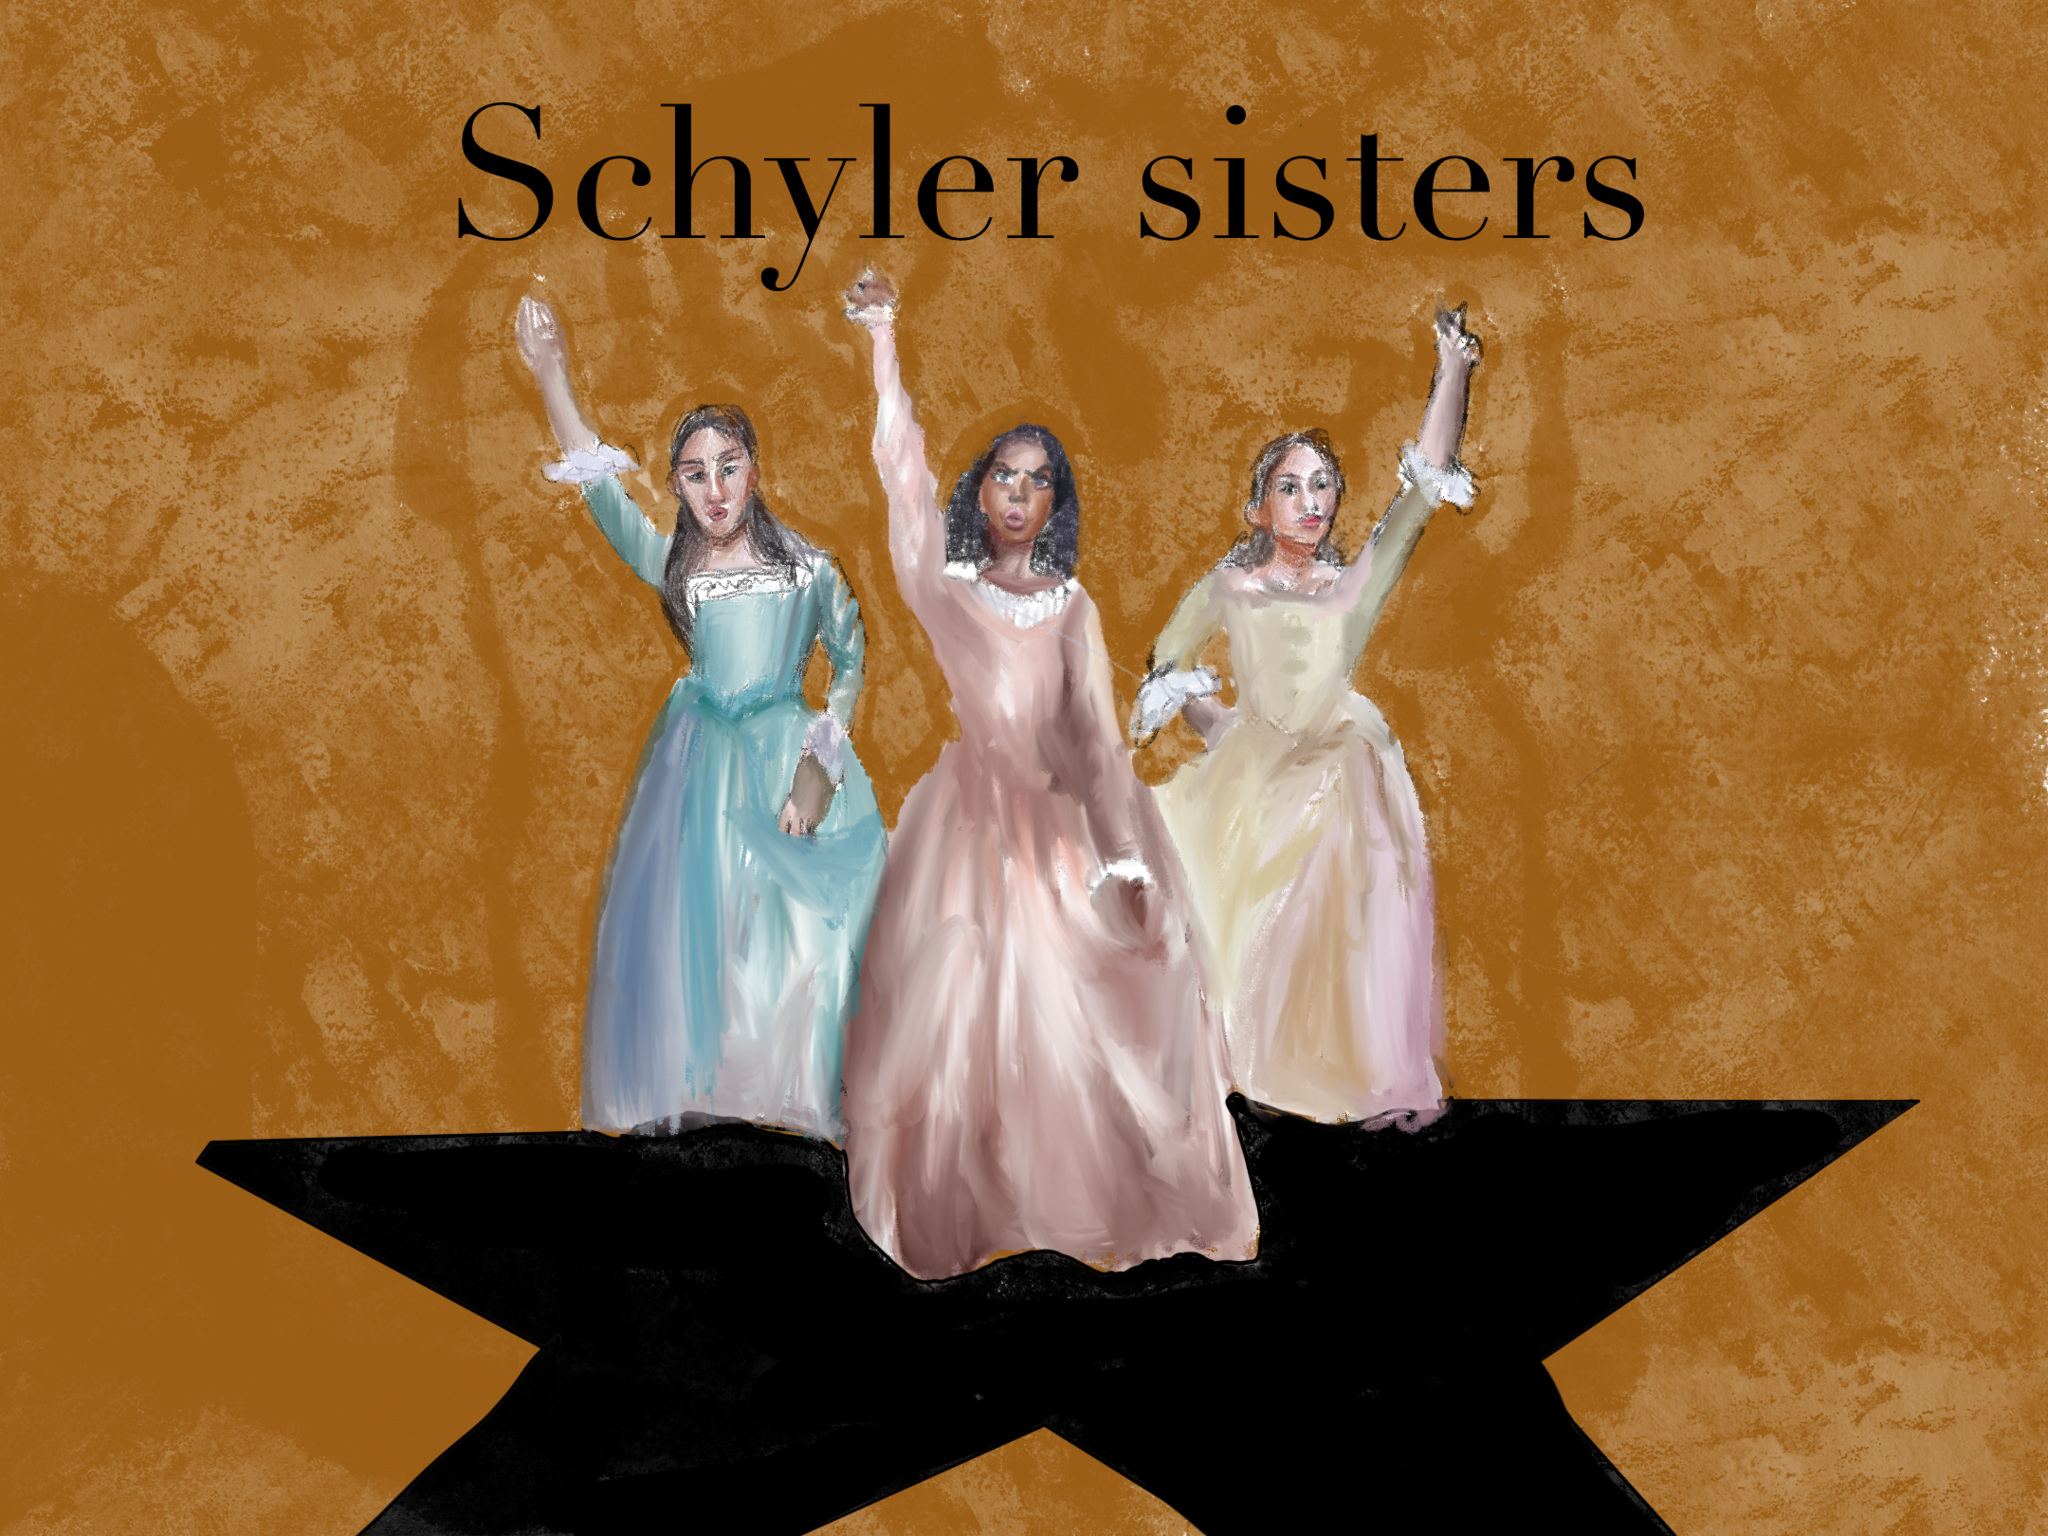 Artist interpretation of Schyler Sisters with arms raised in the air